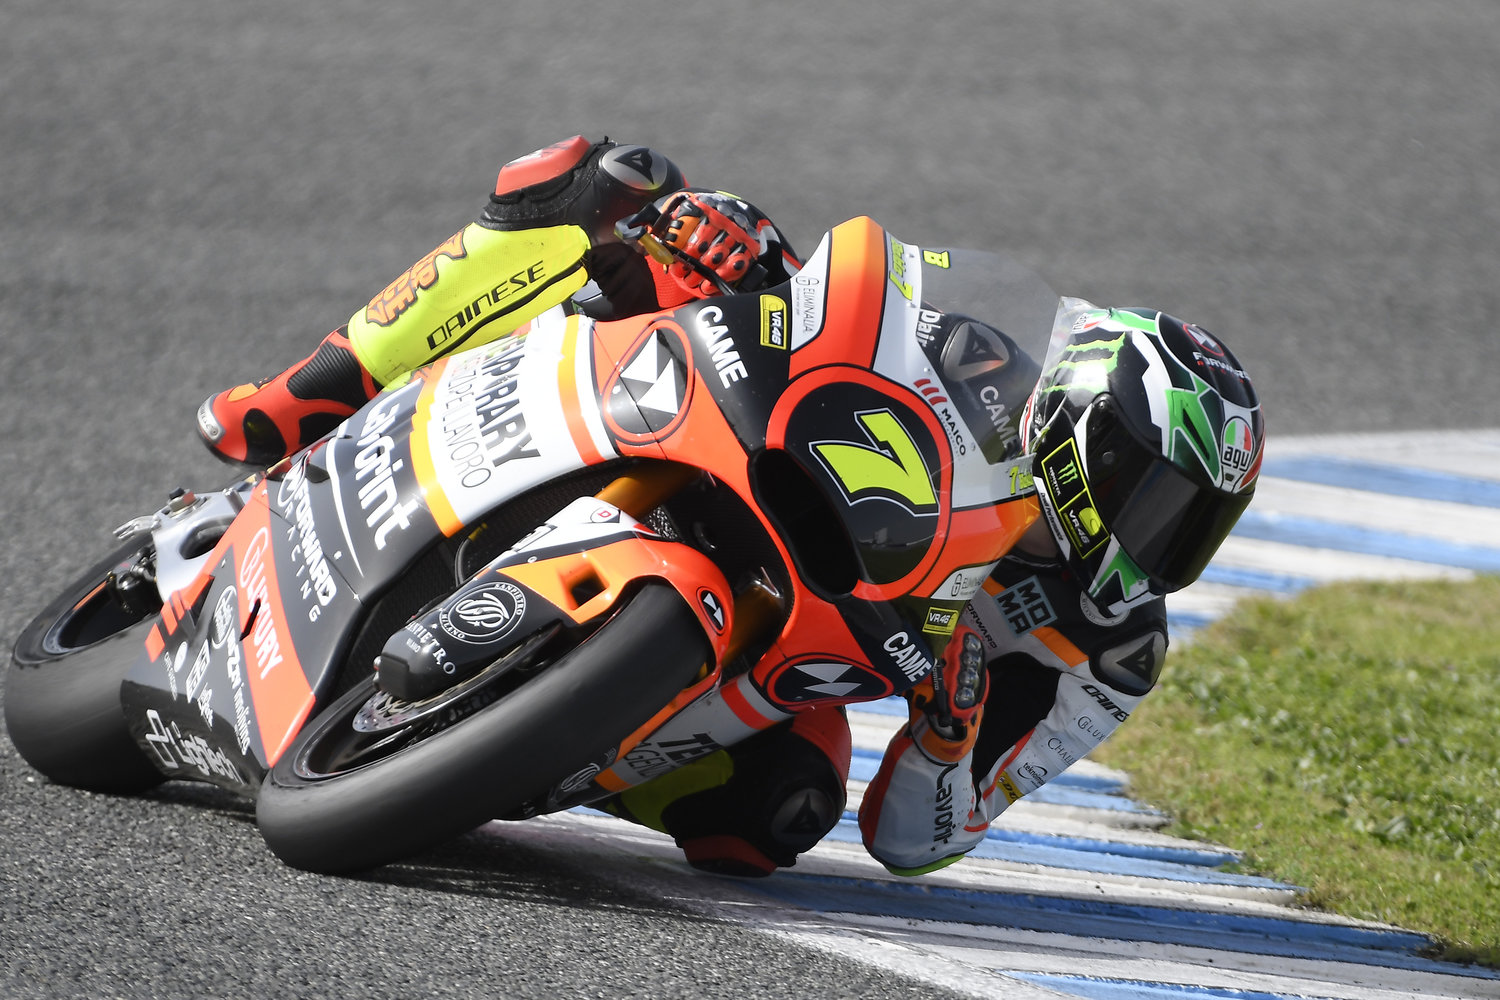 Baldassarri forced to miss opening stages of IRTA test in Jerez